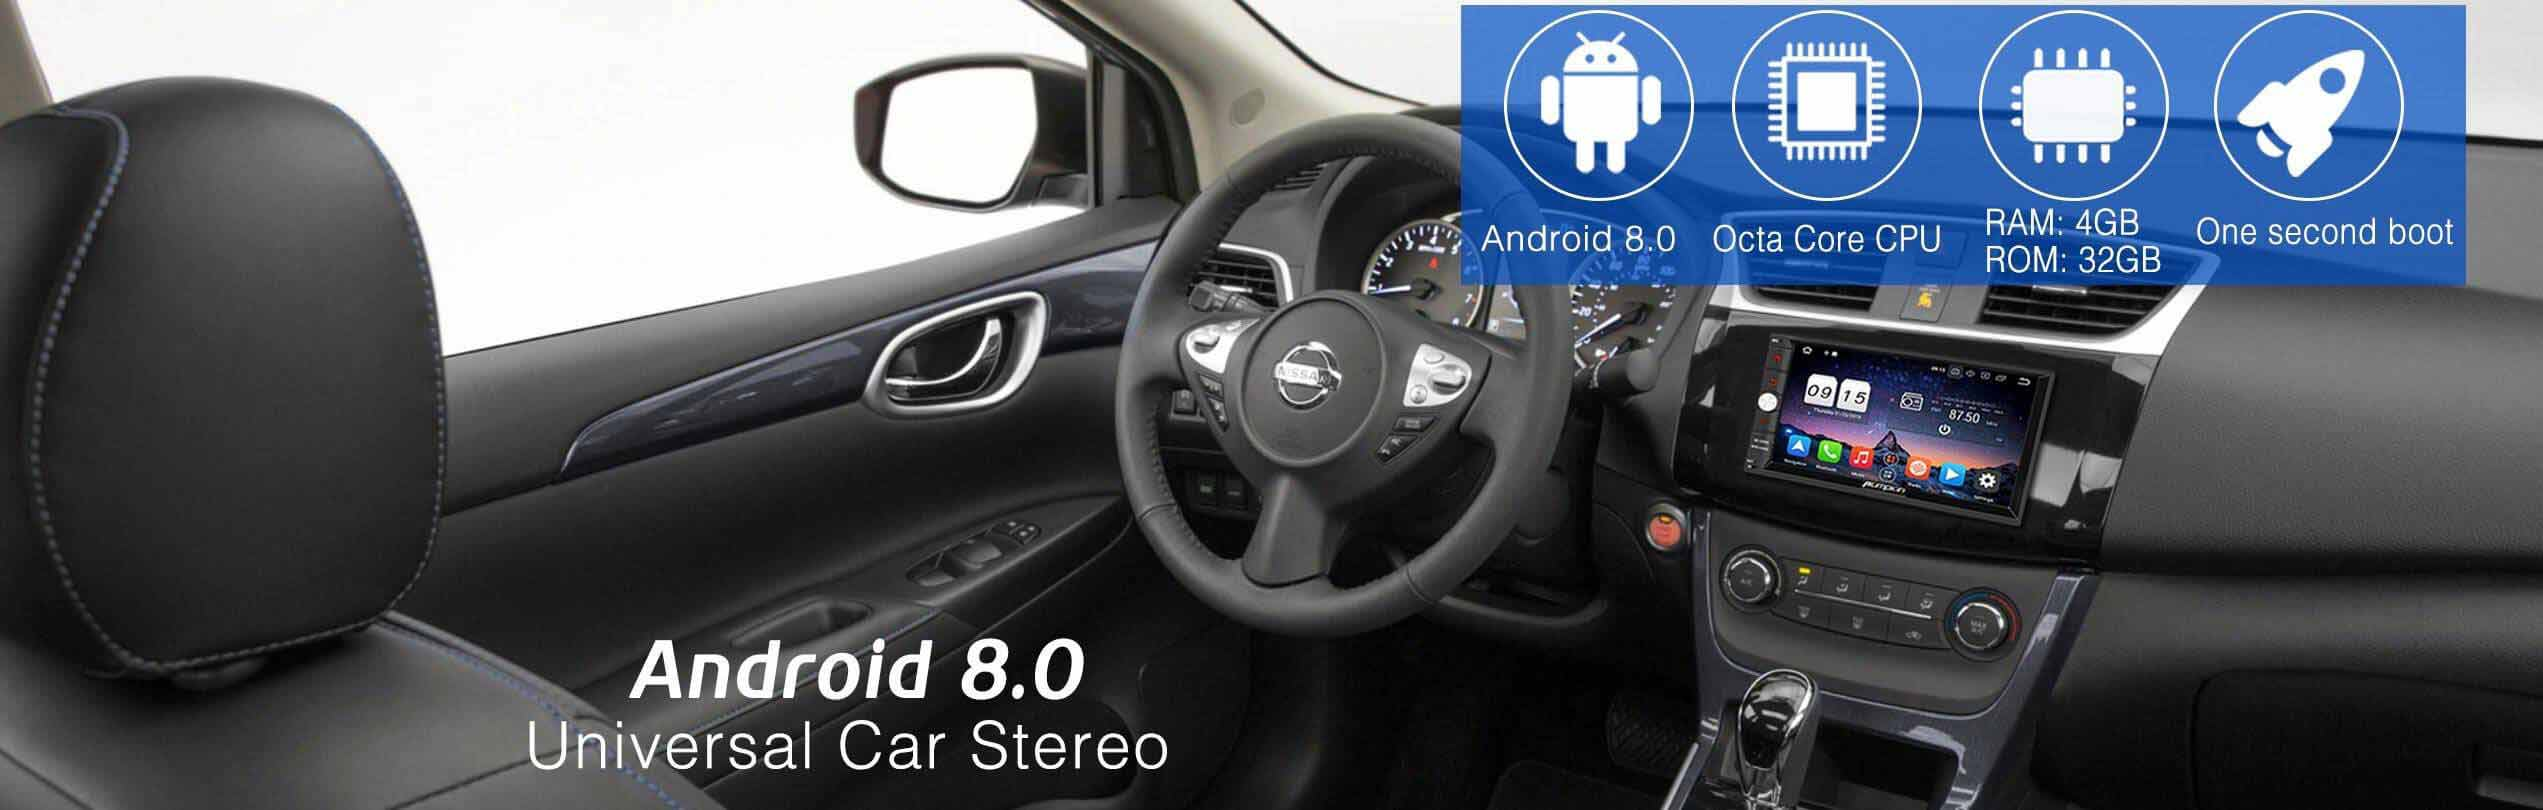 android 8.0 car stereo